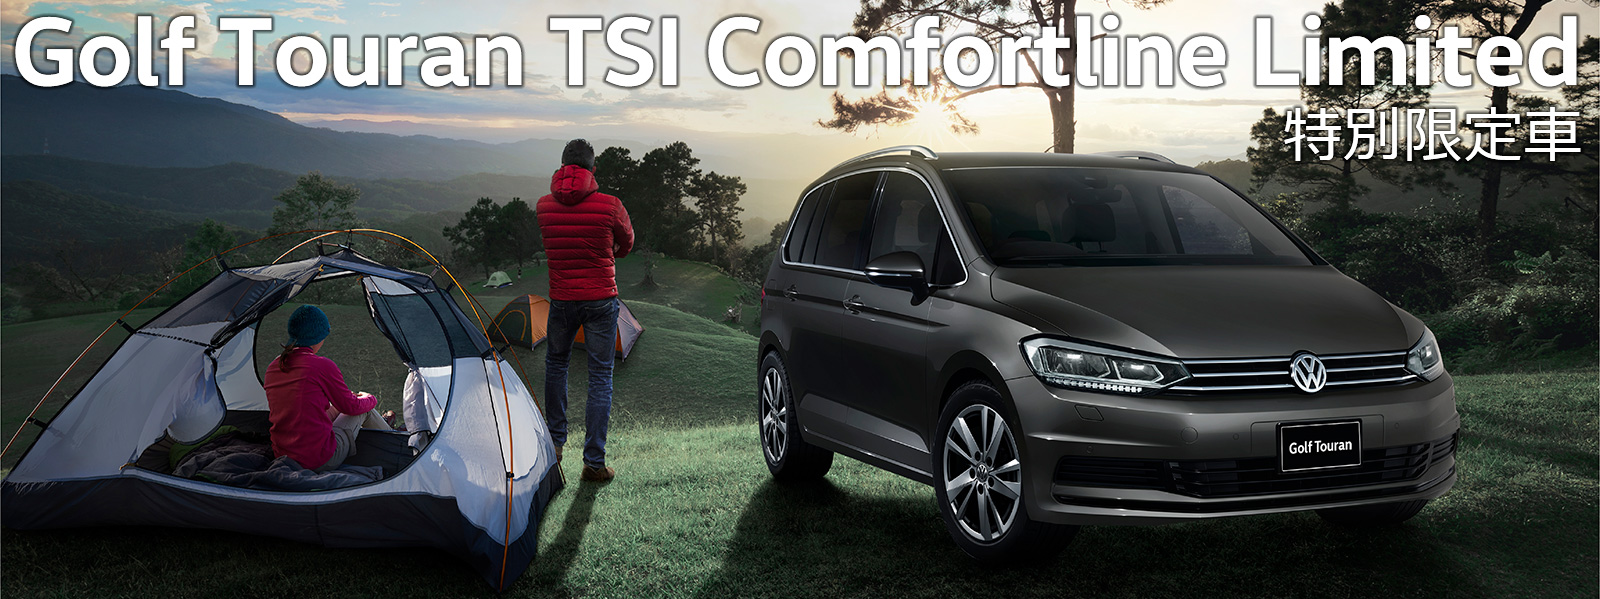 Golf Touran TSI Comfortline Limited 特別限定車